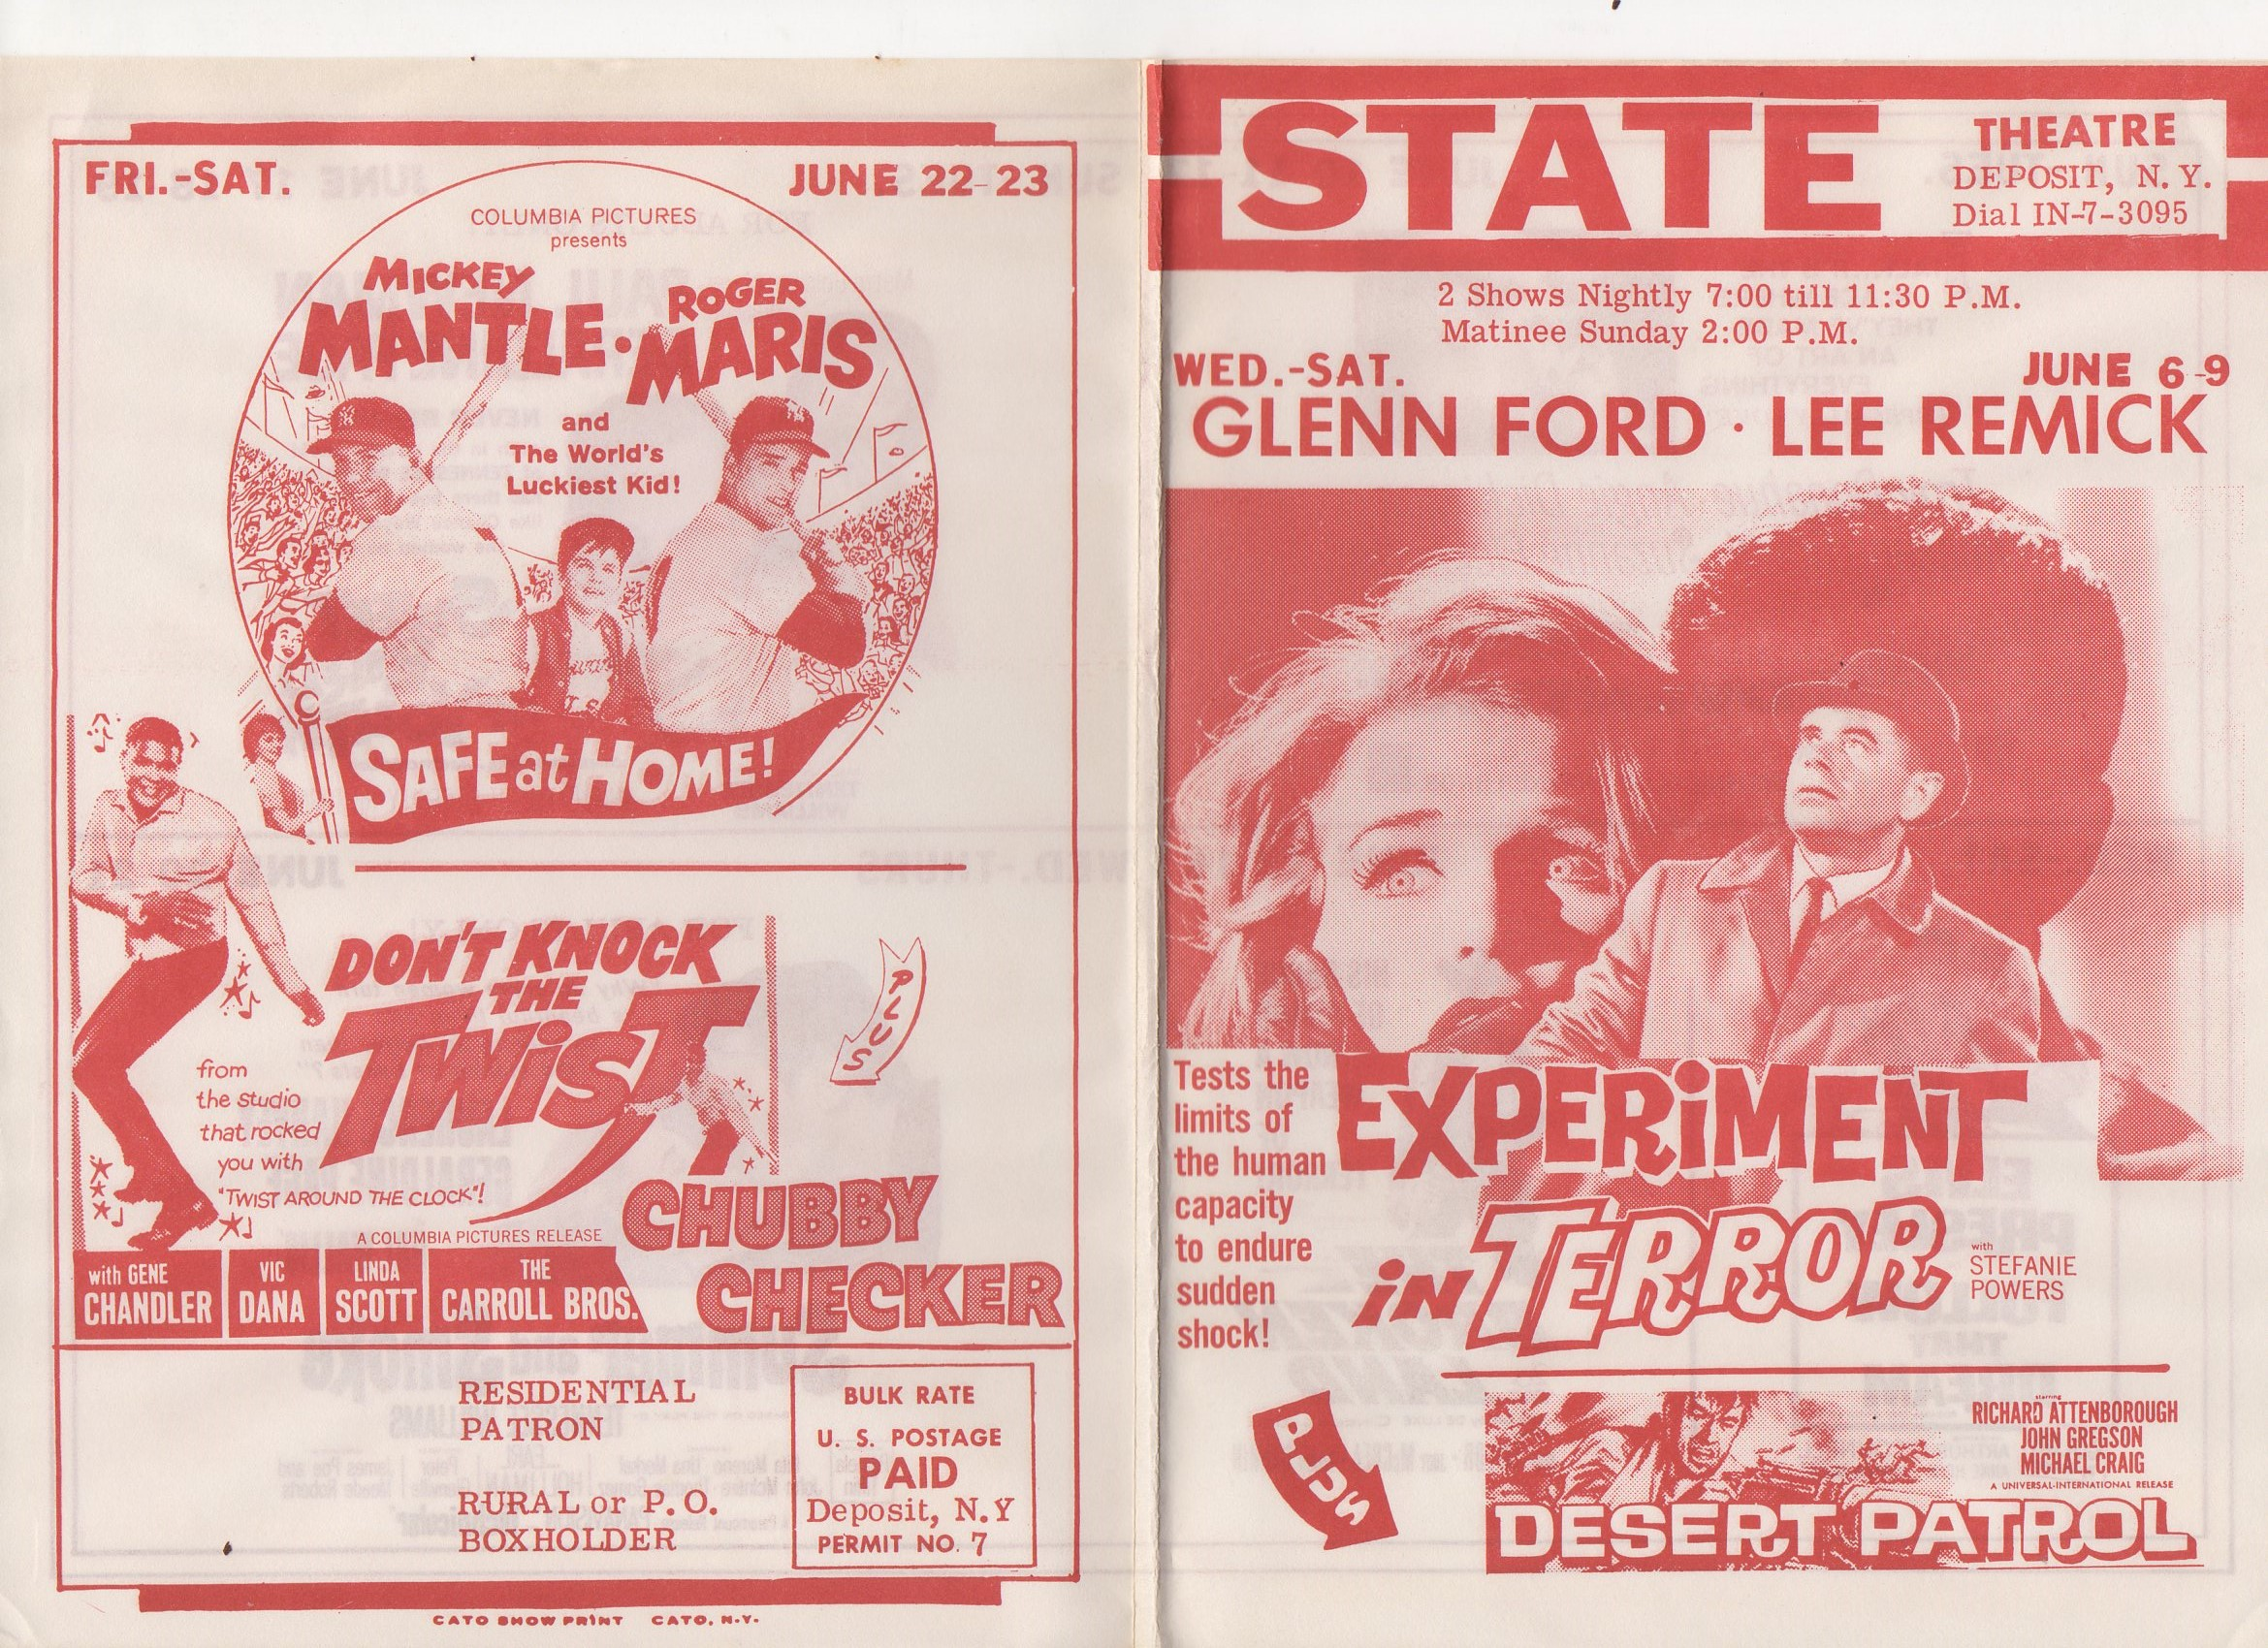 1962 state theatre, deposit, ny, 06/22-23, rare home mailer